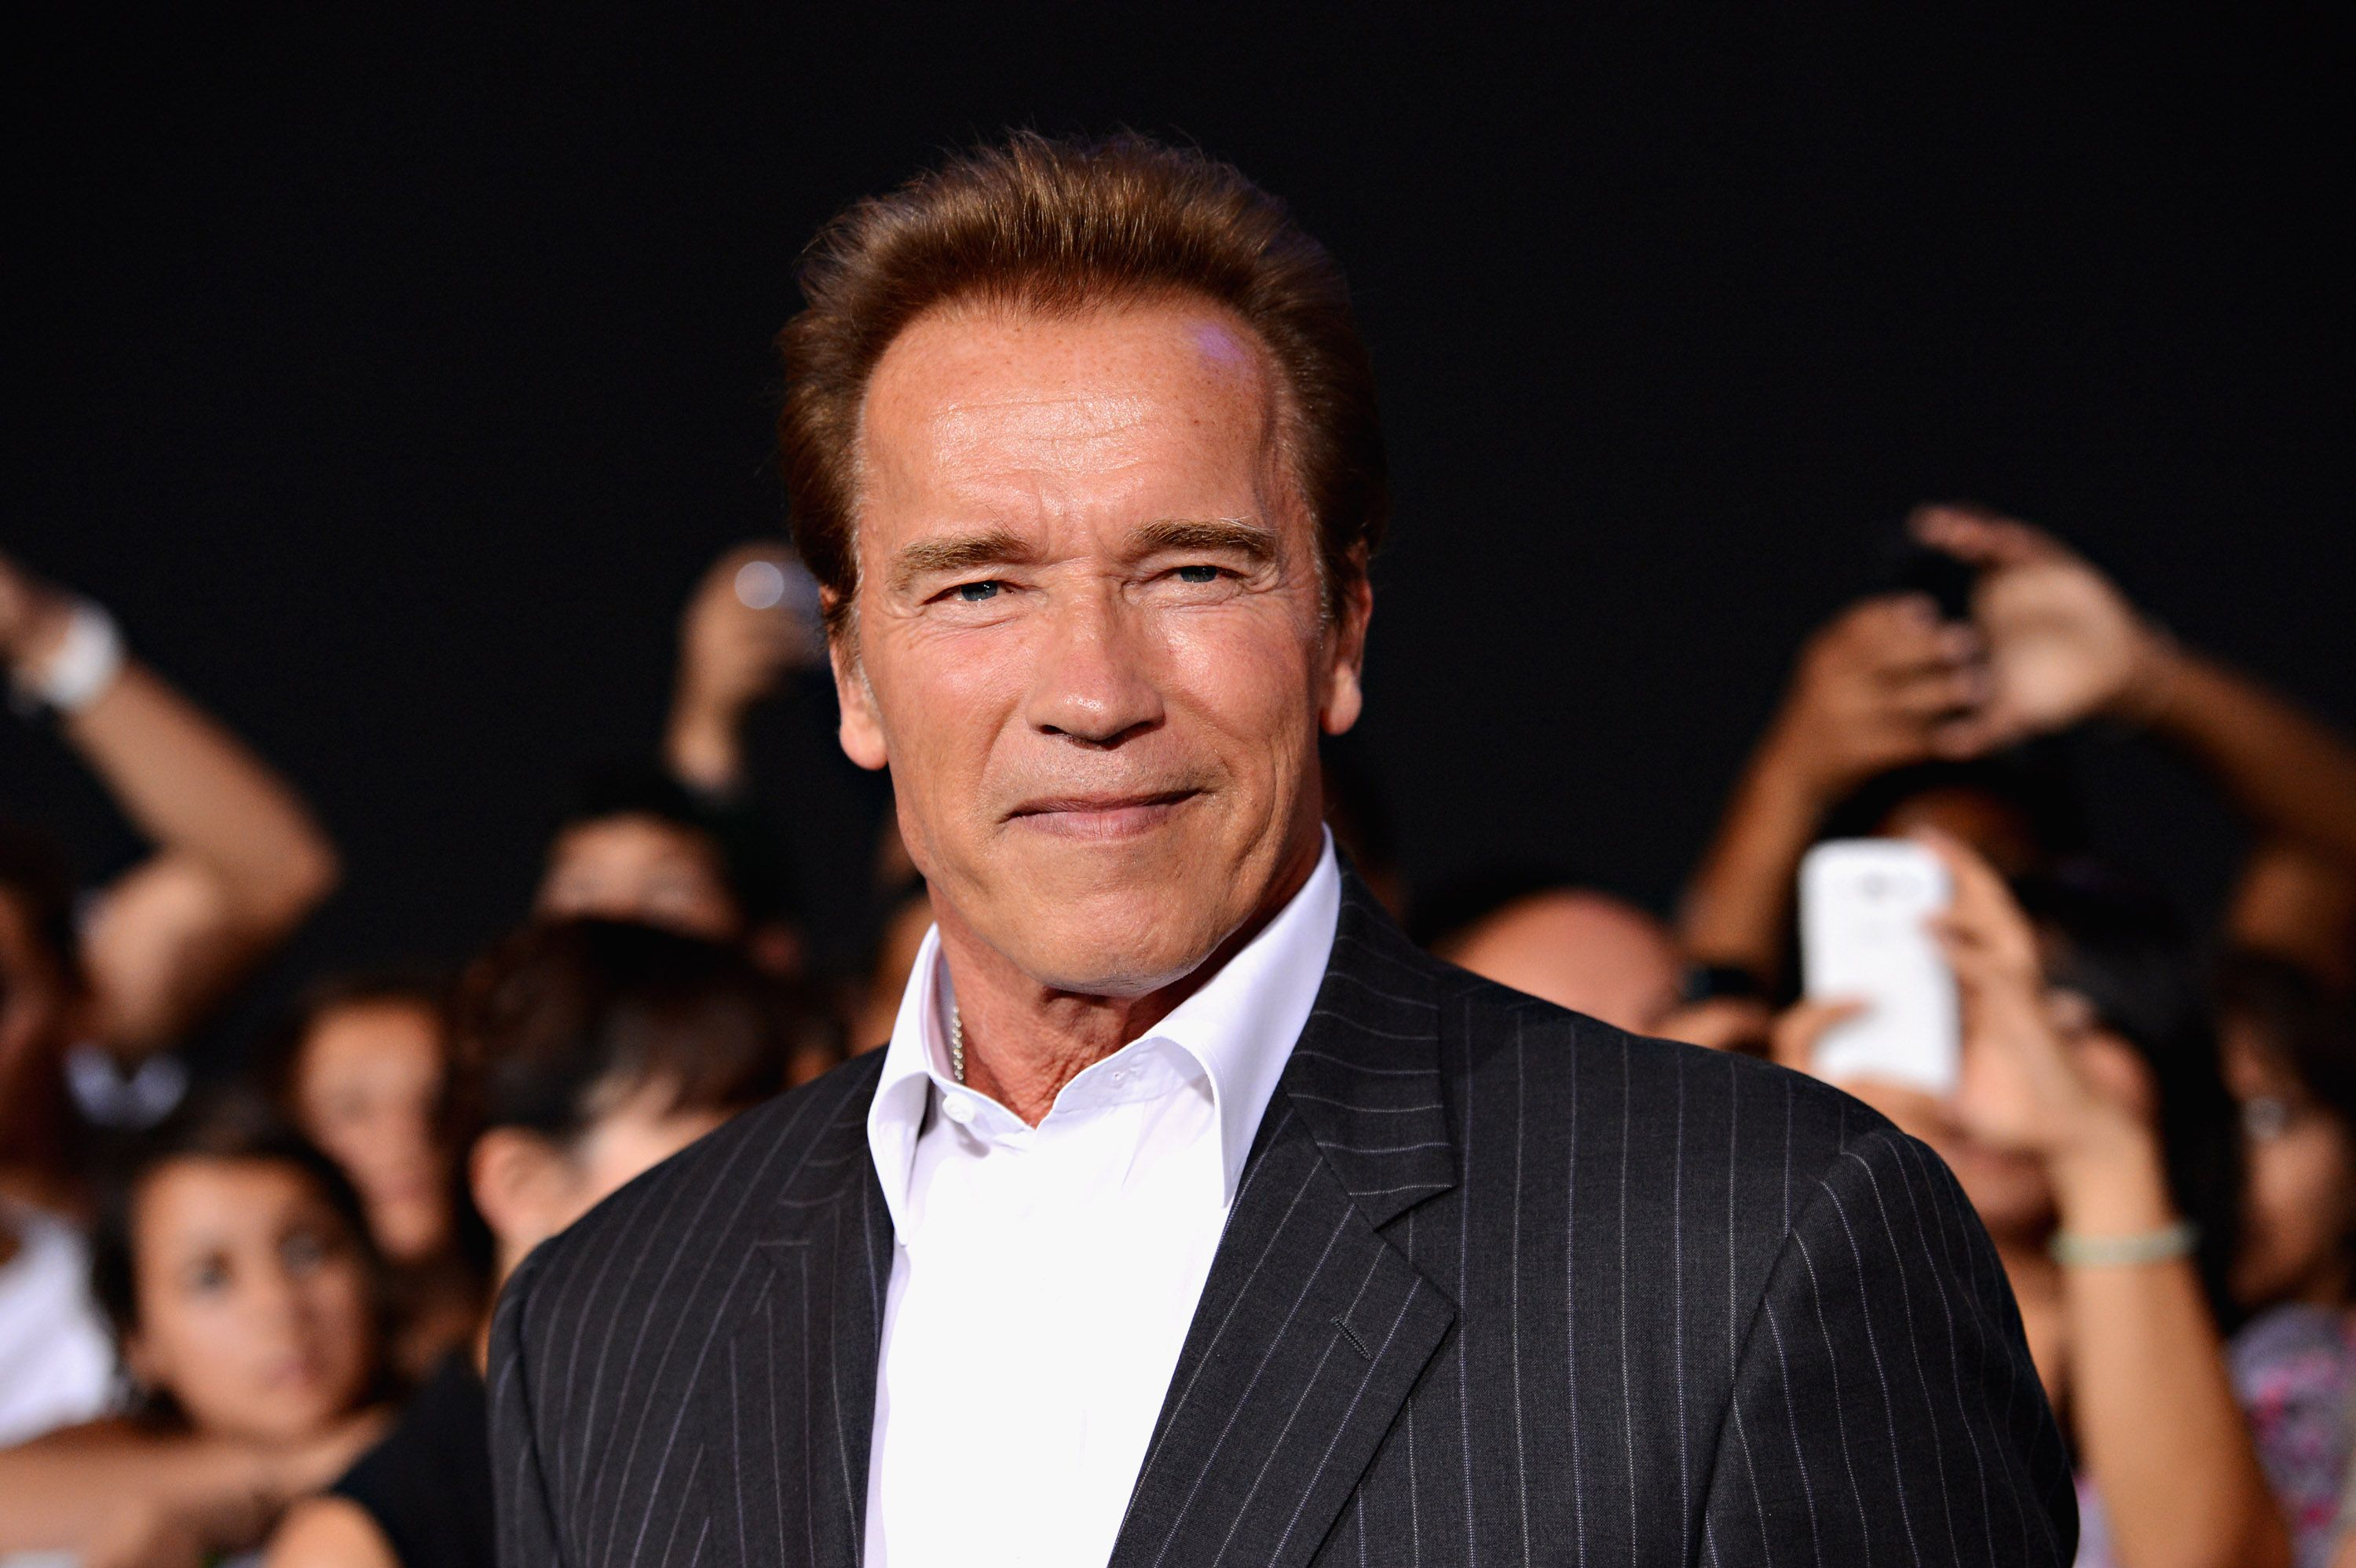 Arnold Schwarzenegger's Best Quotes on Strength and Success